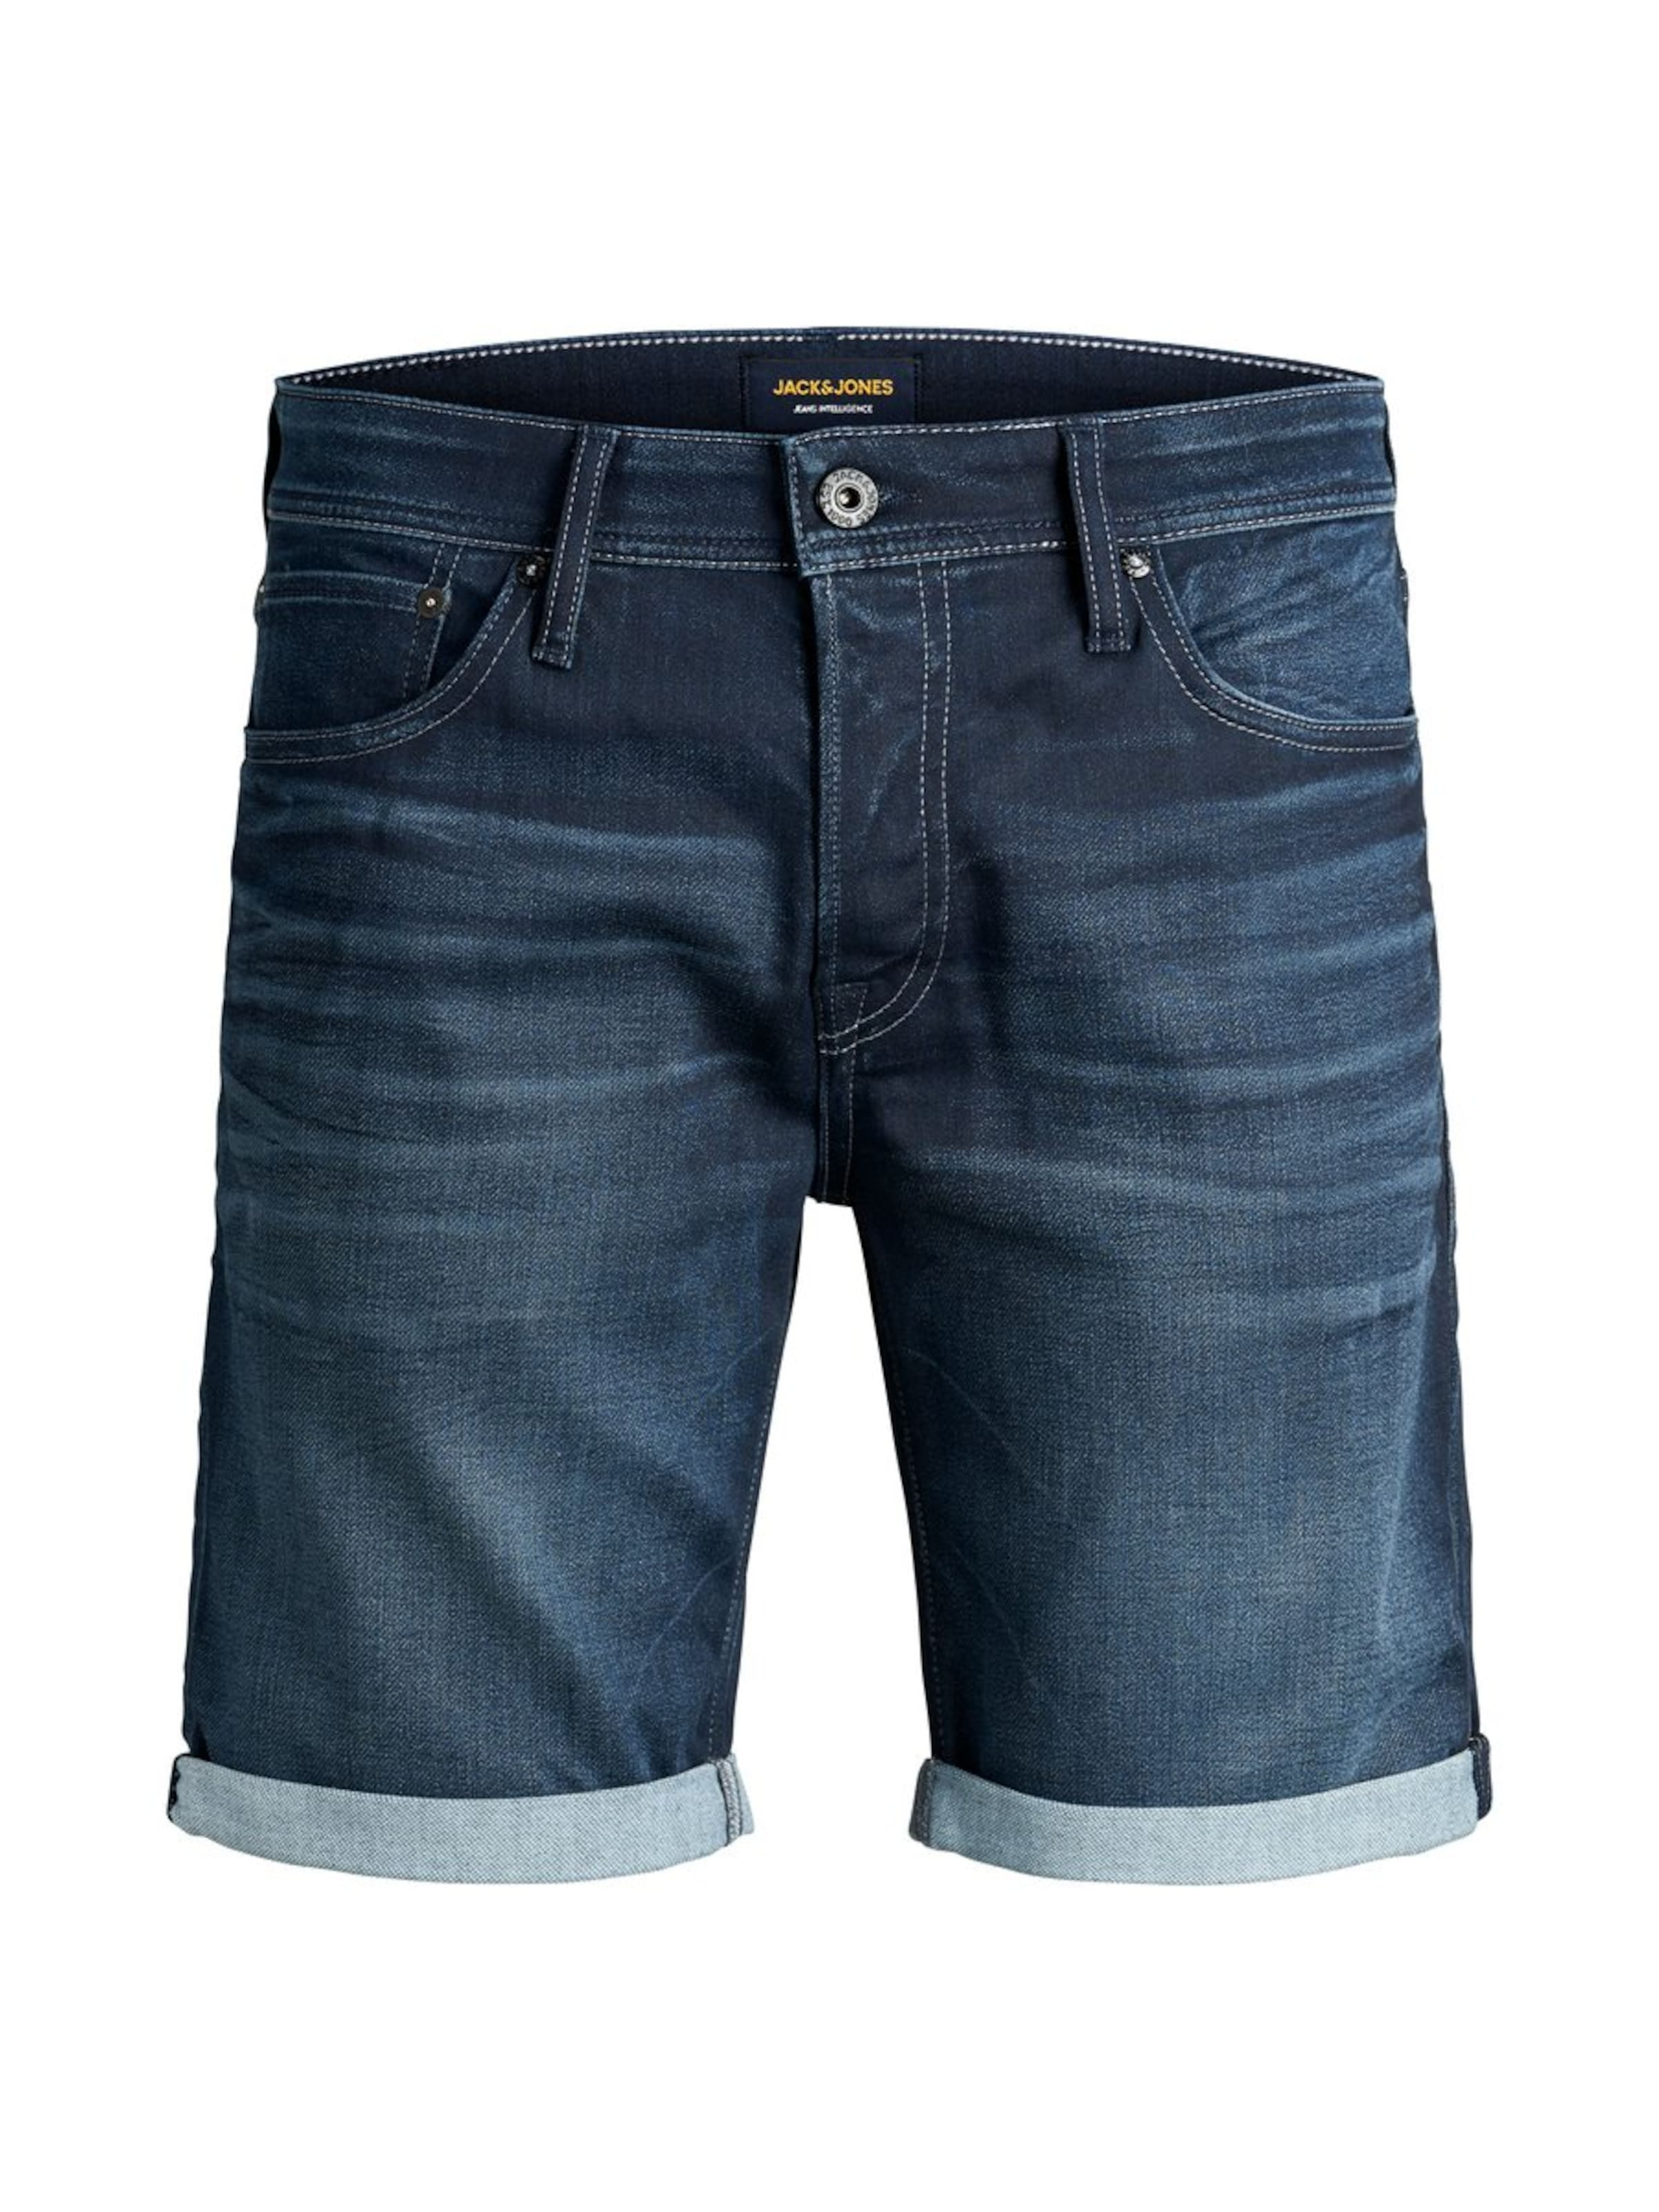 Jackamp; Bleu Jones Denim Jean En 1FcJl3TK